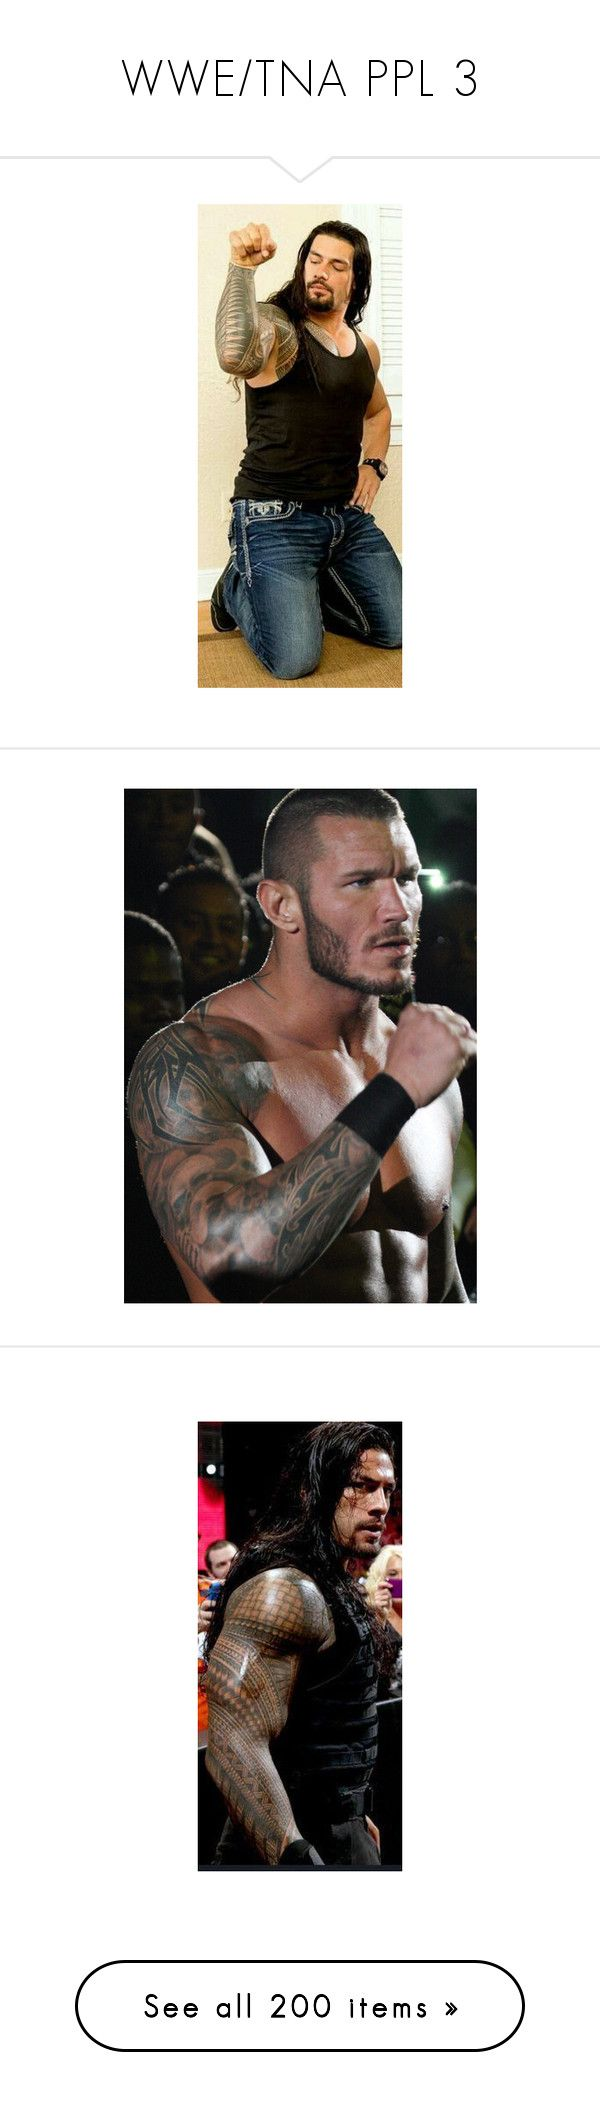 """WWE/TNA PPL 3"" by im-not-weird-your-normal ❤ liked on Polyvore featuring wwe, roman reigns, randy orton, pictures, people, seth rollins, the shield, emma, catch and daniel bryan"